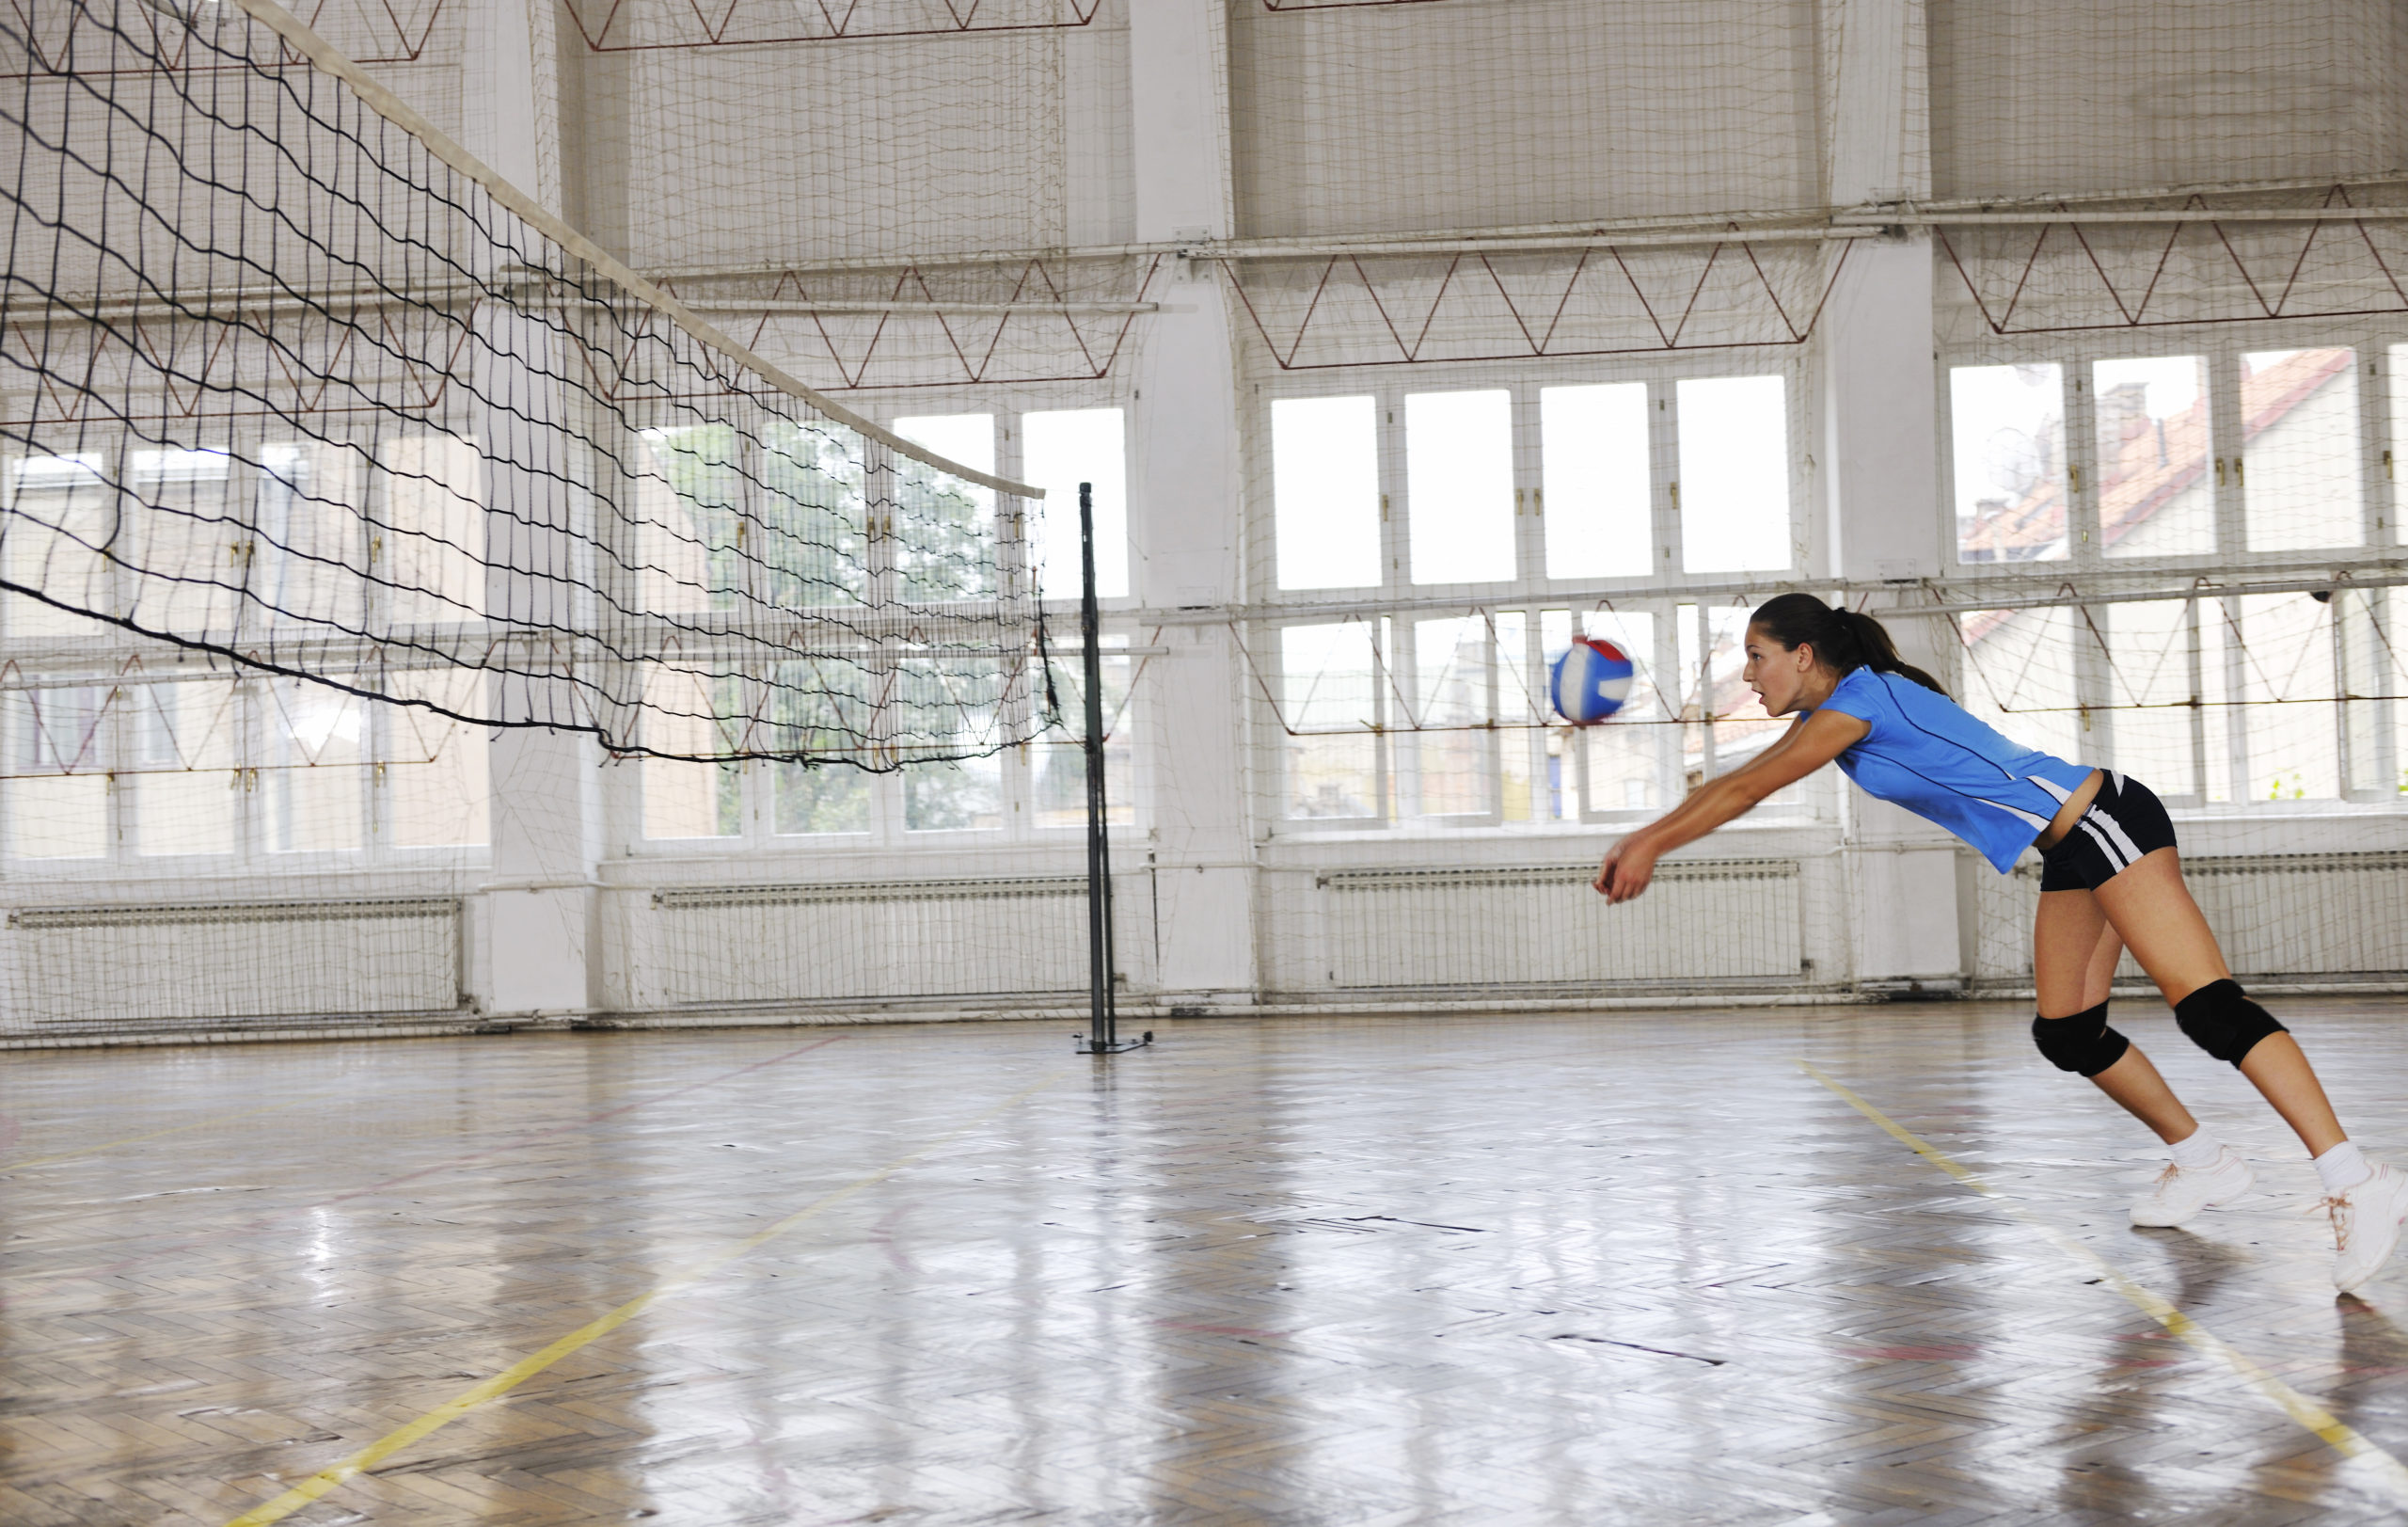 A female volleyball player in a blue jersey leans forward to volley the ball back to the other side